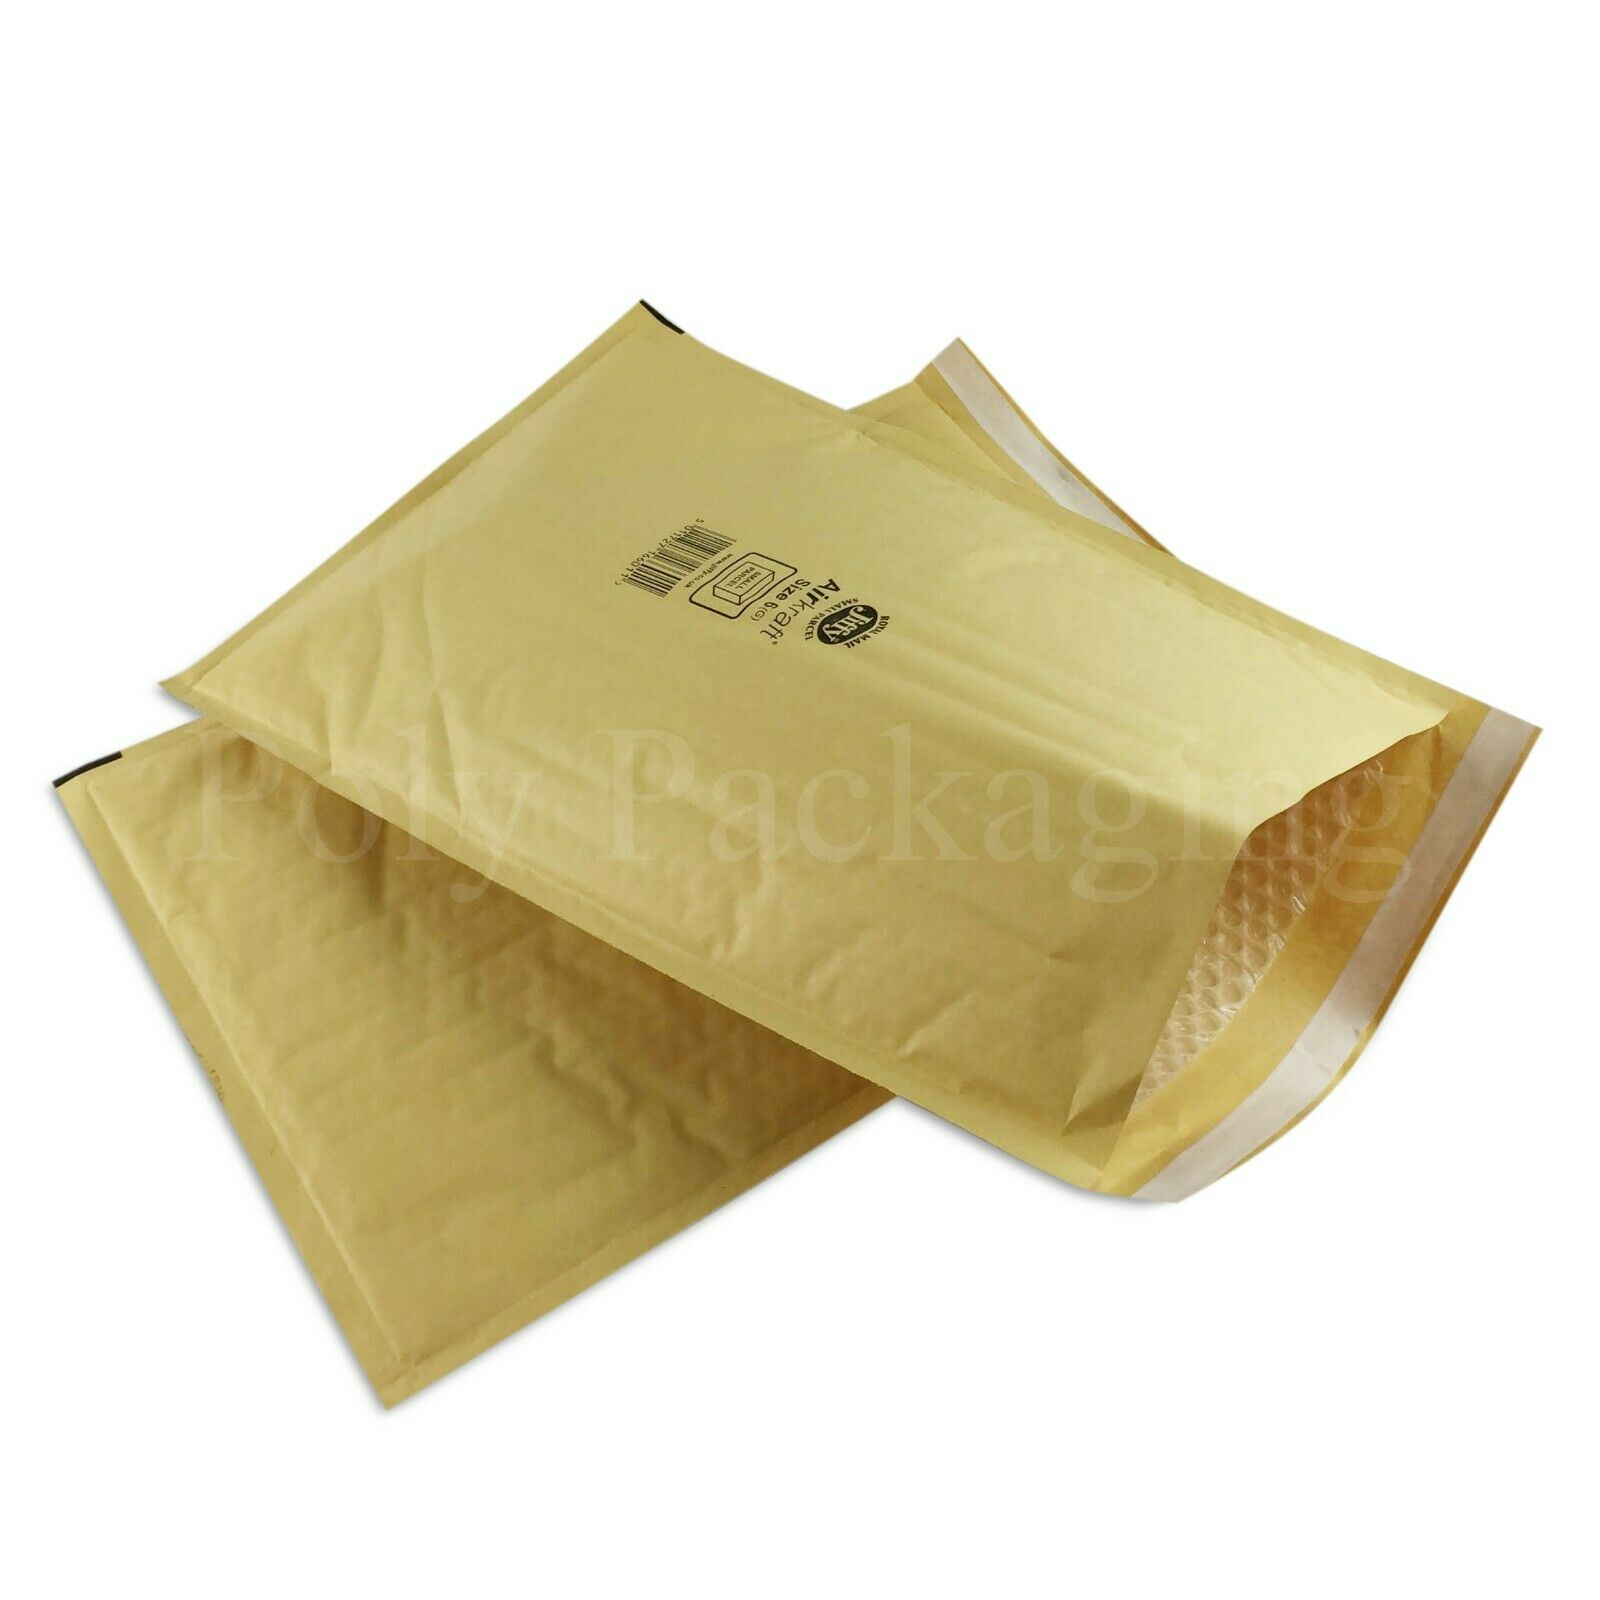 JIFFY gold ENVELOPES 290x445mm(Size 6)Padded Mailing Bags Small Parcel Any Qty